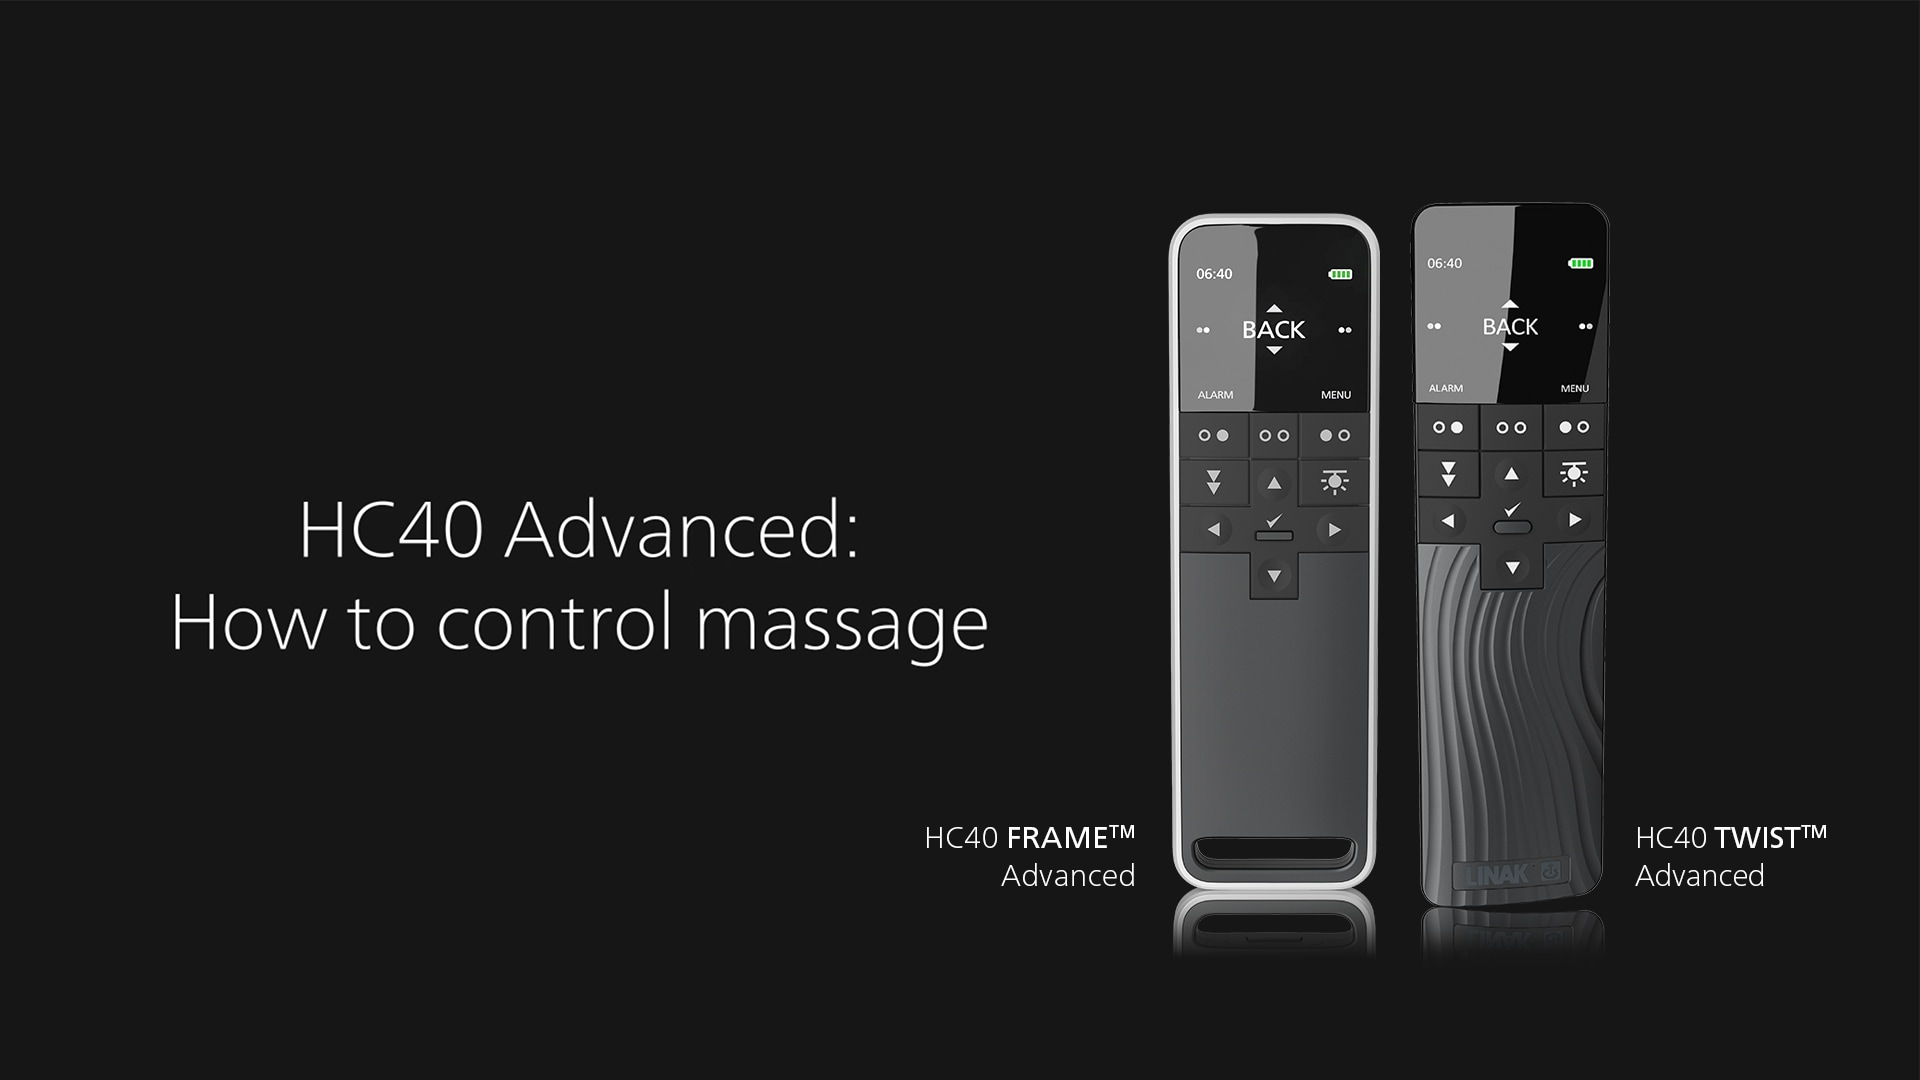 HC40 Advanced: Så här styr du massagefunktionen